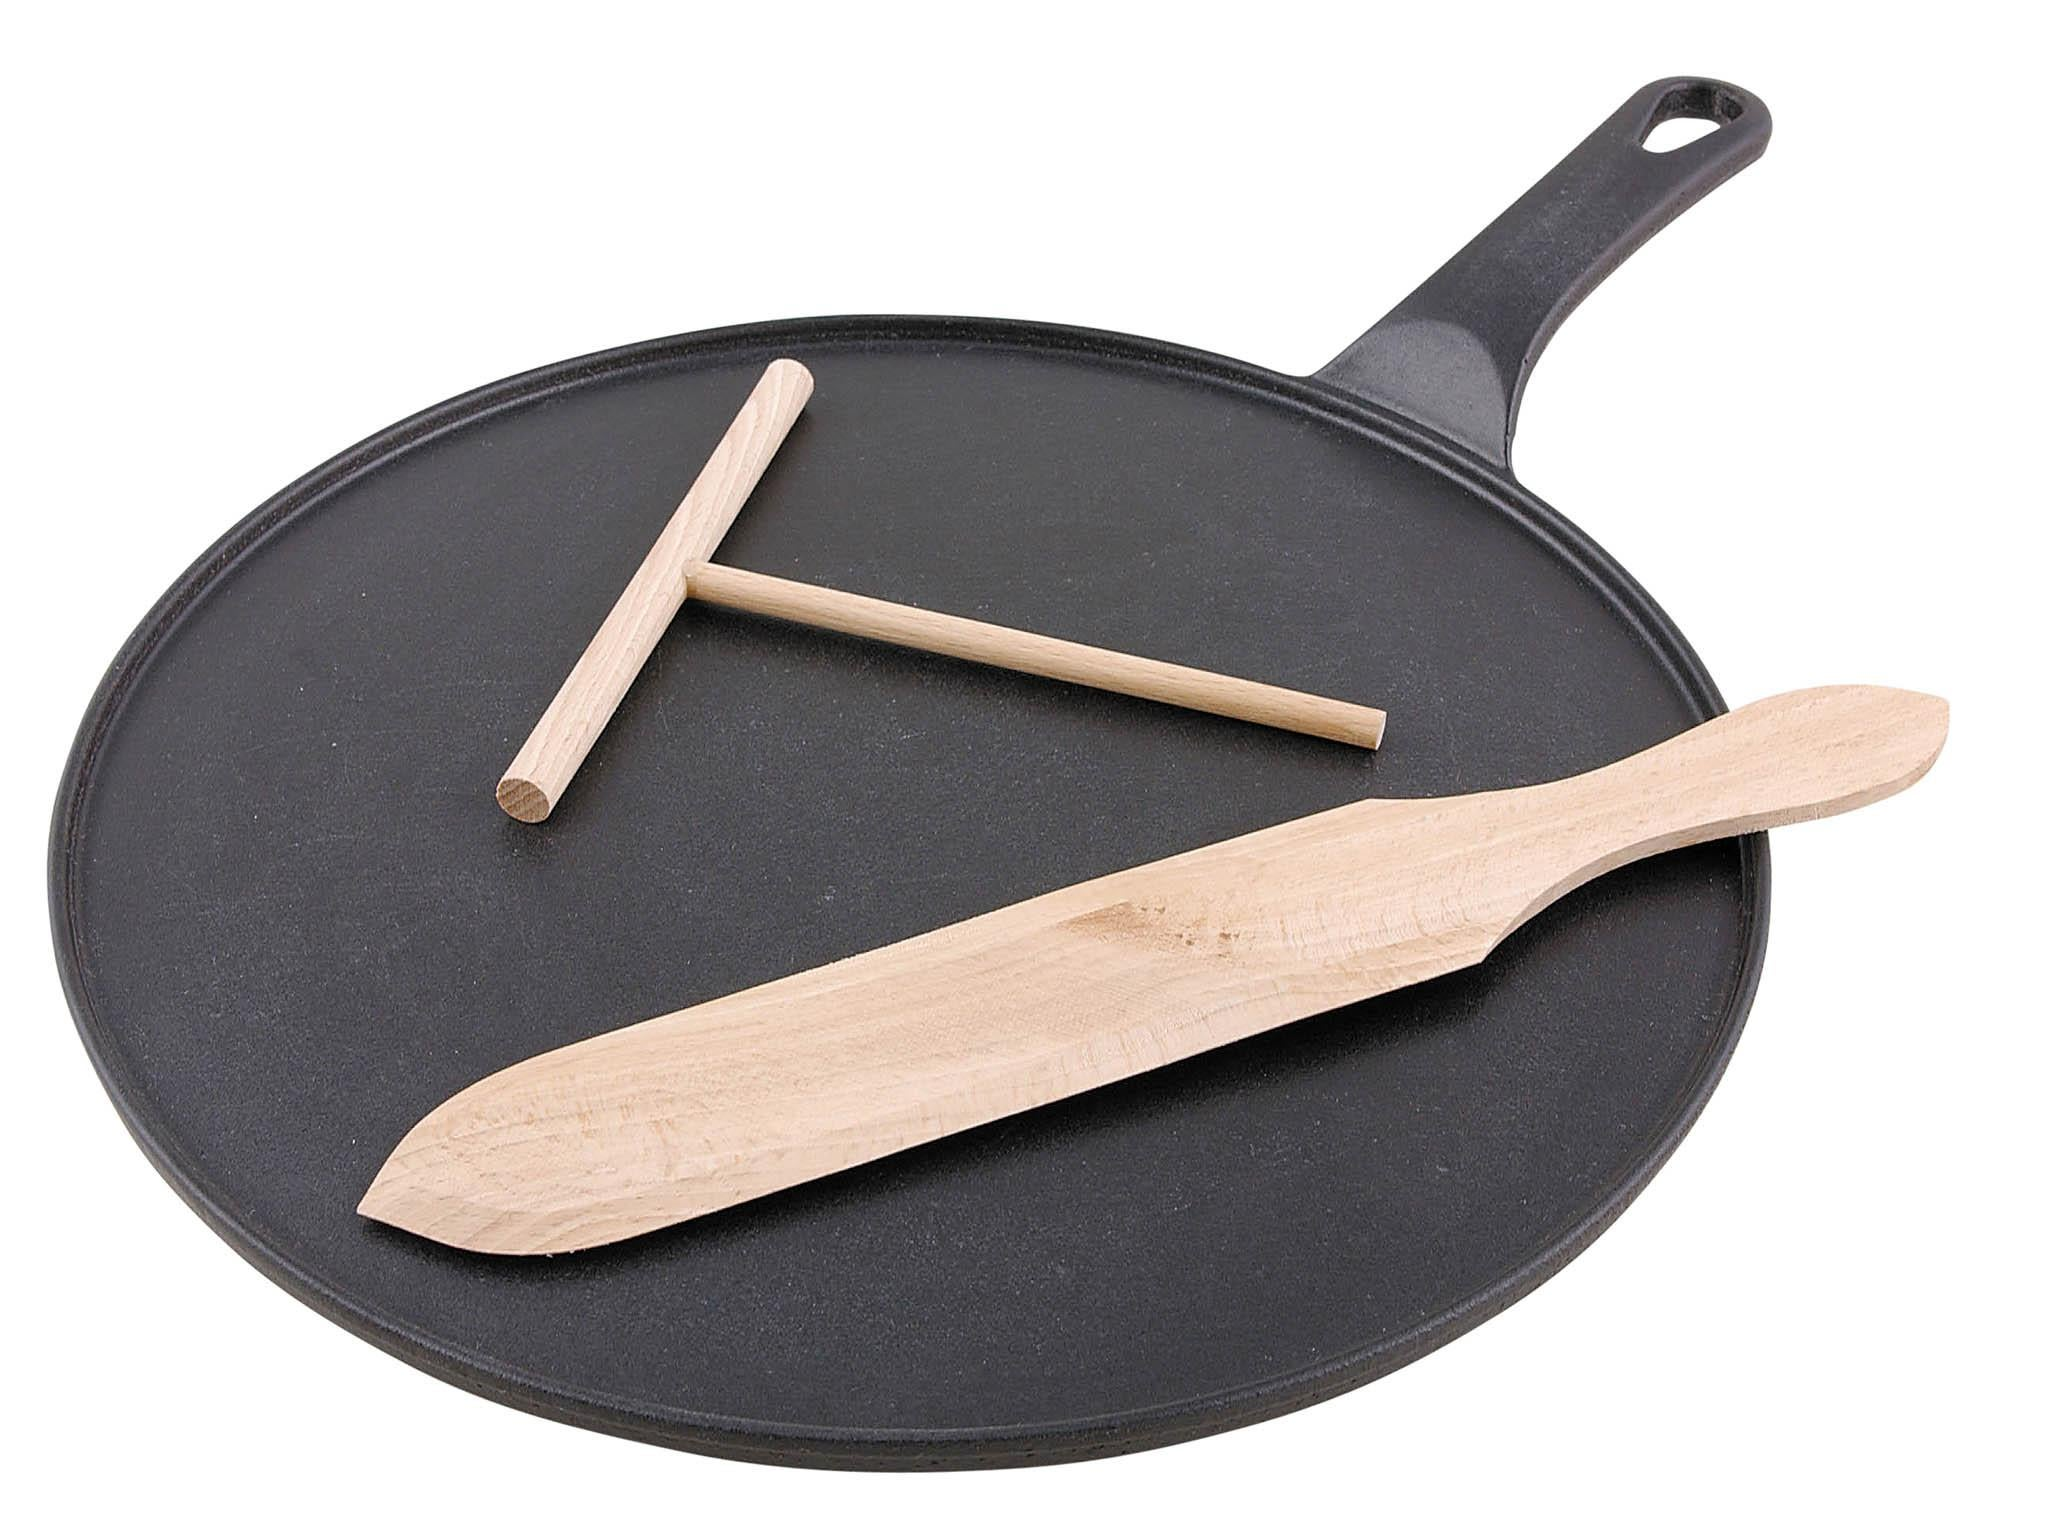 10 best pancake pans | The Independent